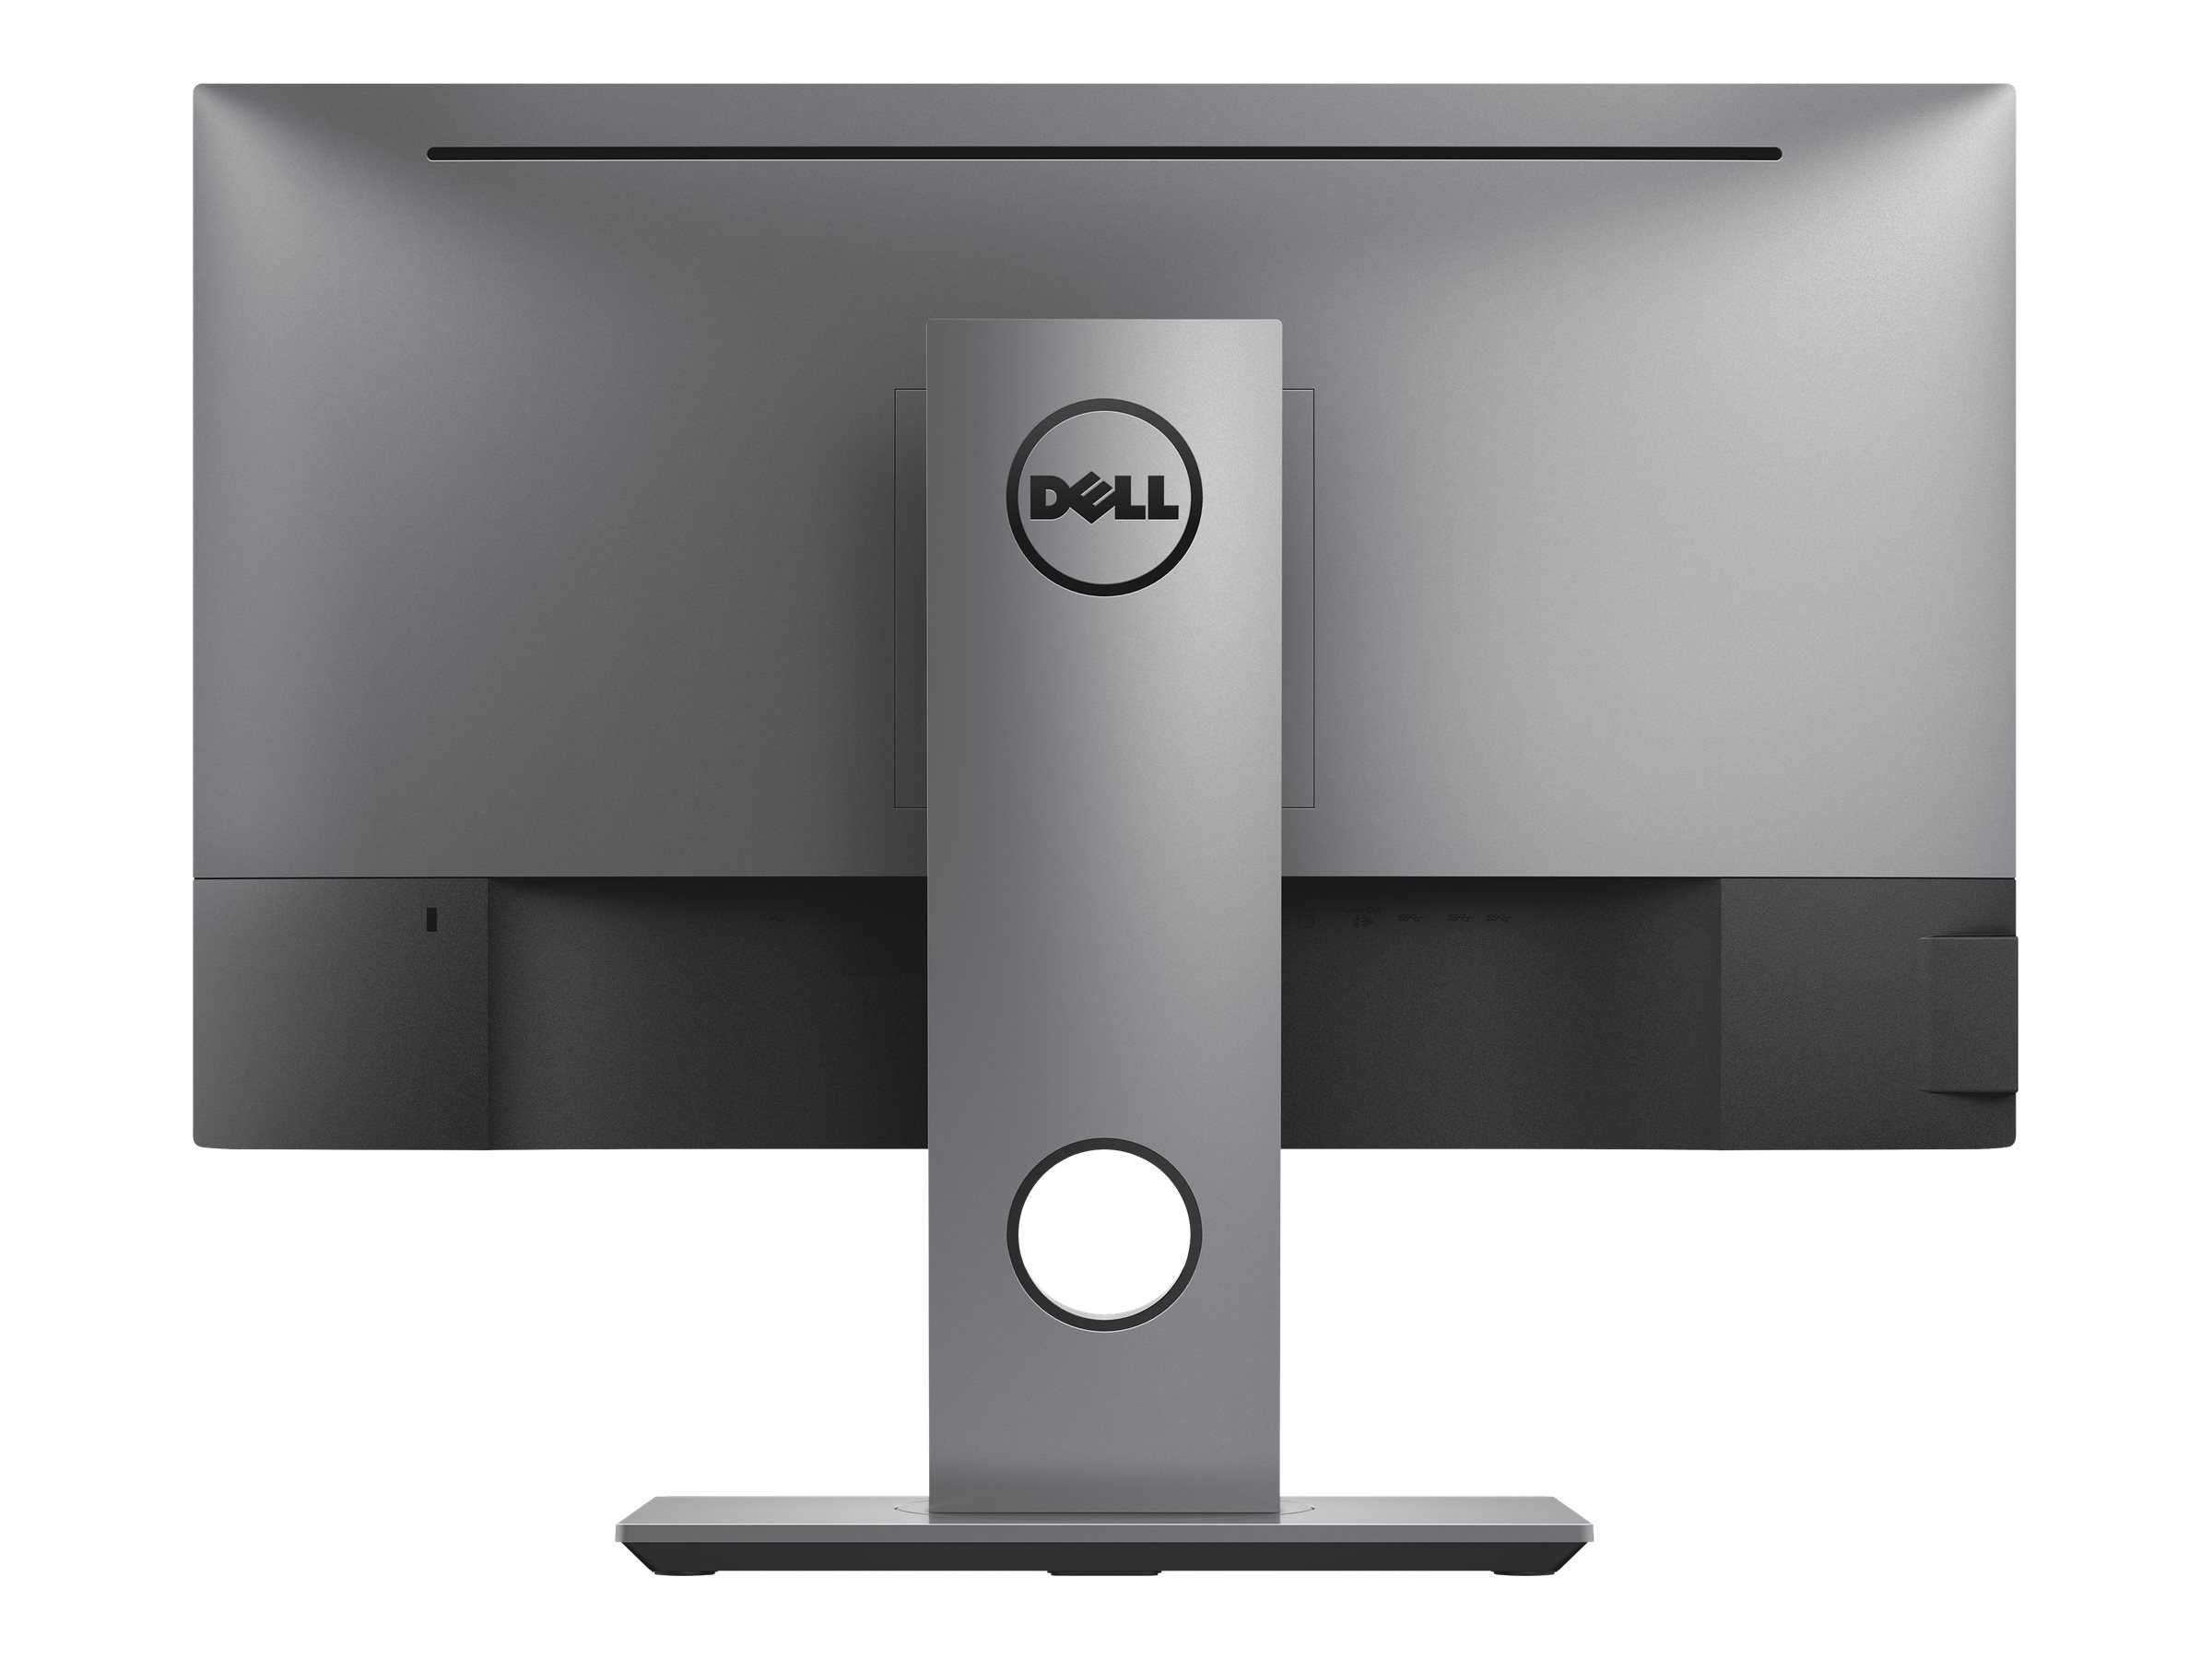 dell ultrasharp u2417h cran led full hd 1080p 23 8 ecrans d 39 ordinateurs. Black Bedroom Furniture Sets. Home Design Ideas